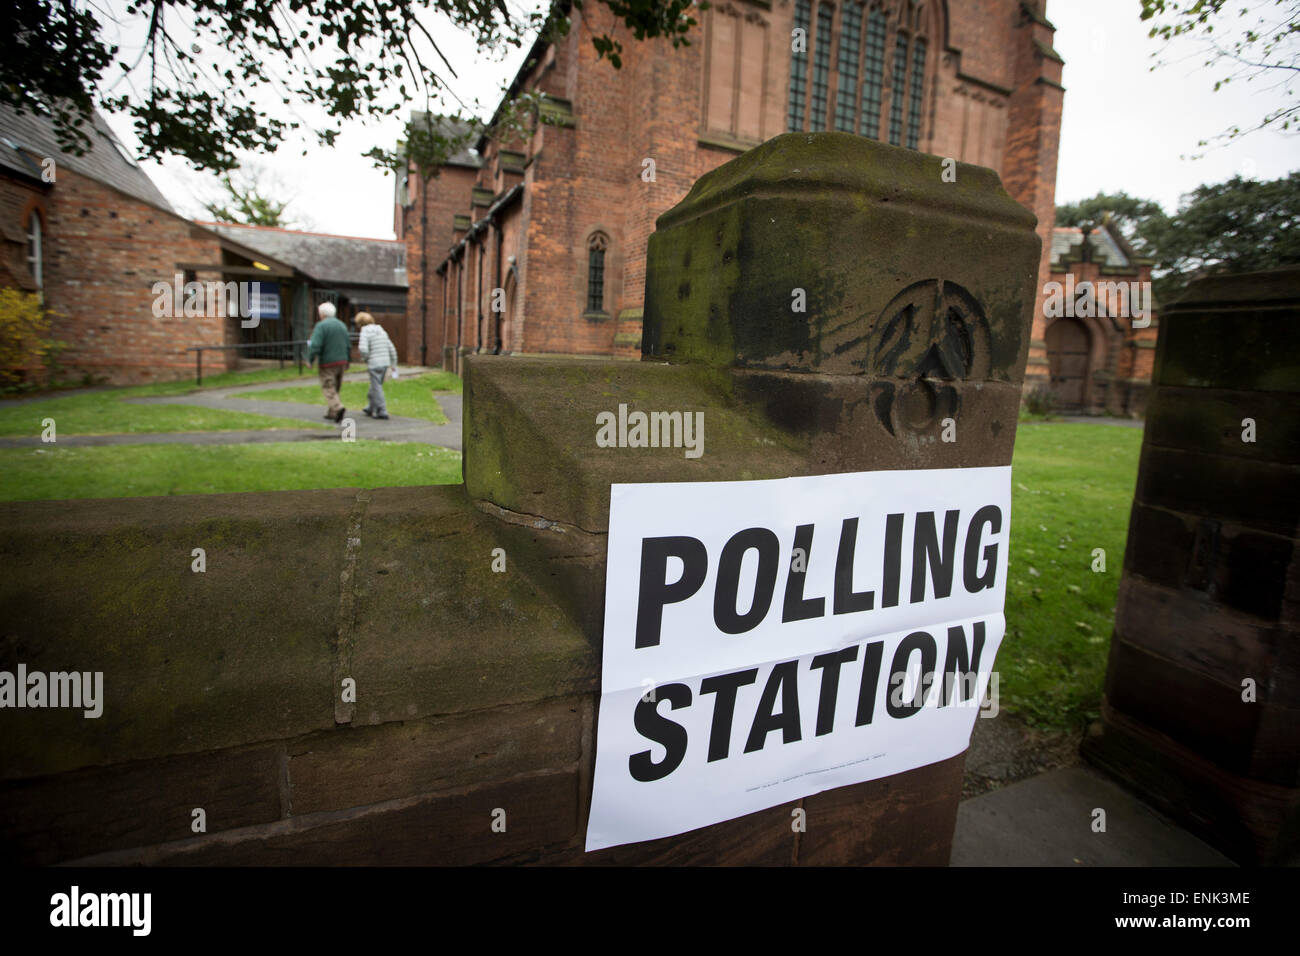 Voters arriving at a polling station in Hoylake, Wirral to cast their votes at the 2015 UK General Election. They - Stock Image